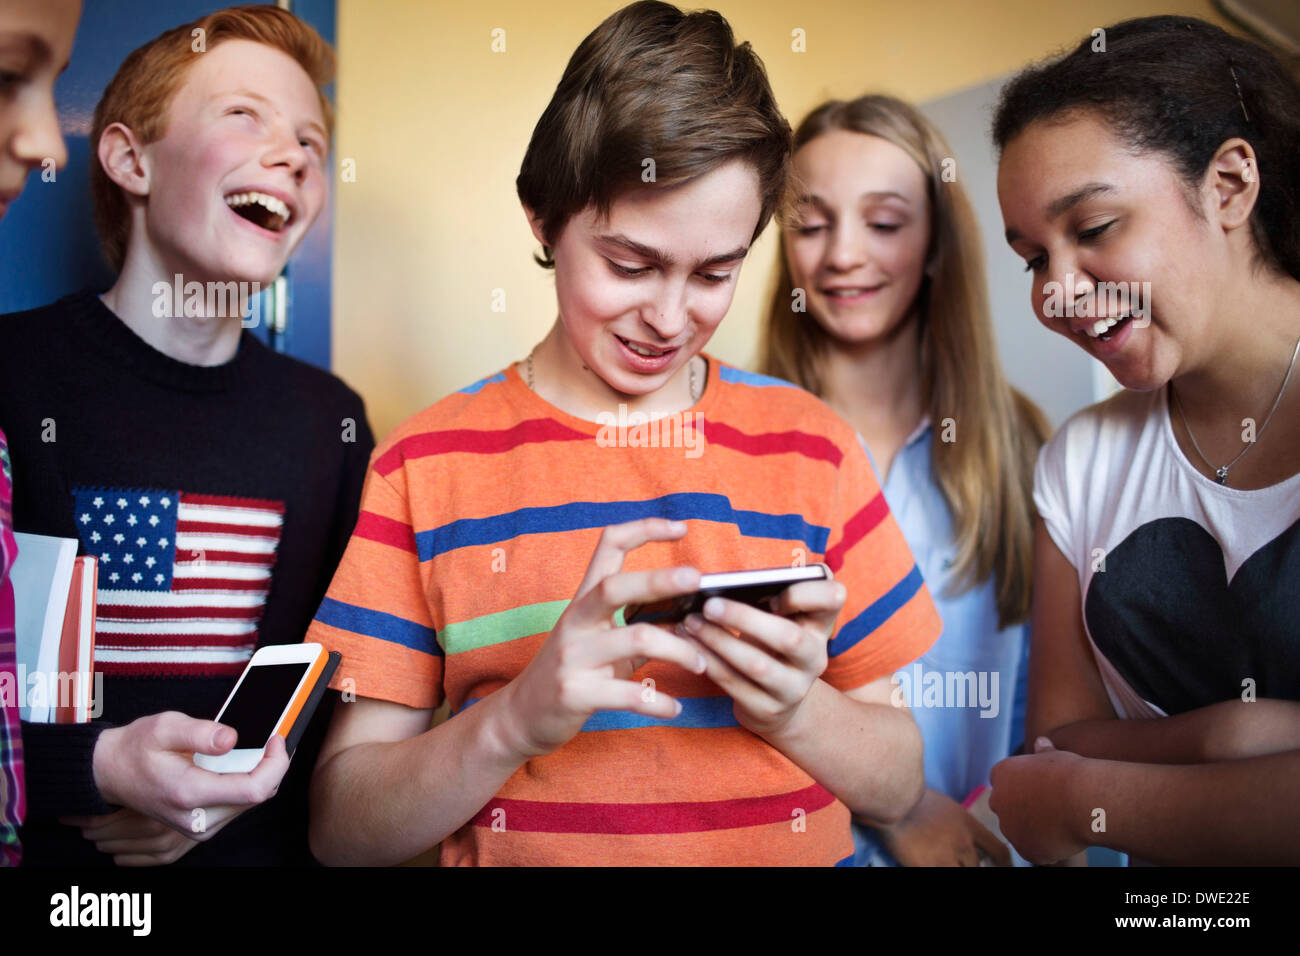 Happy students using cell phones in high school - Stock Image